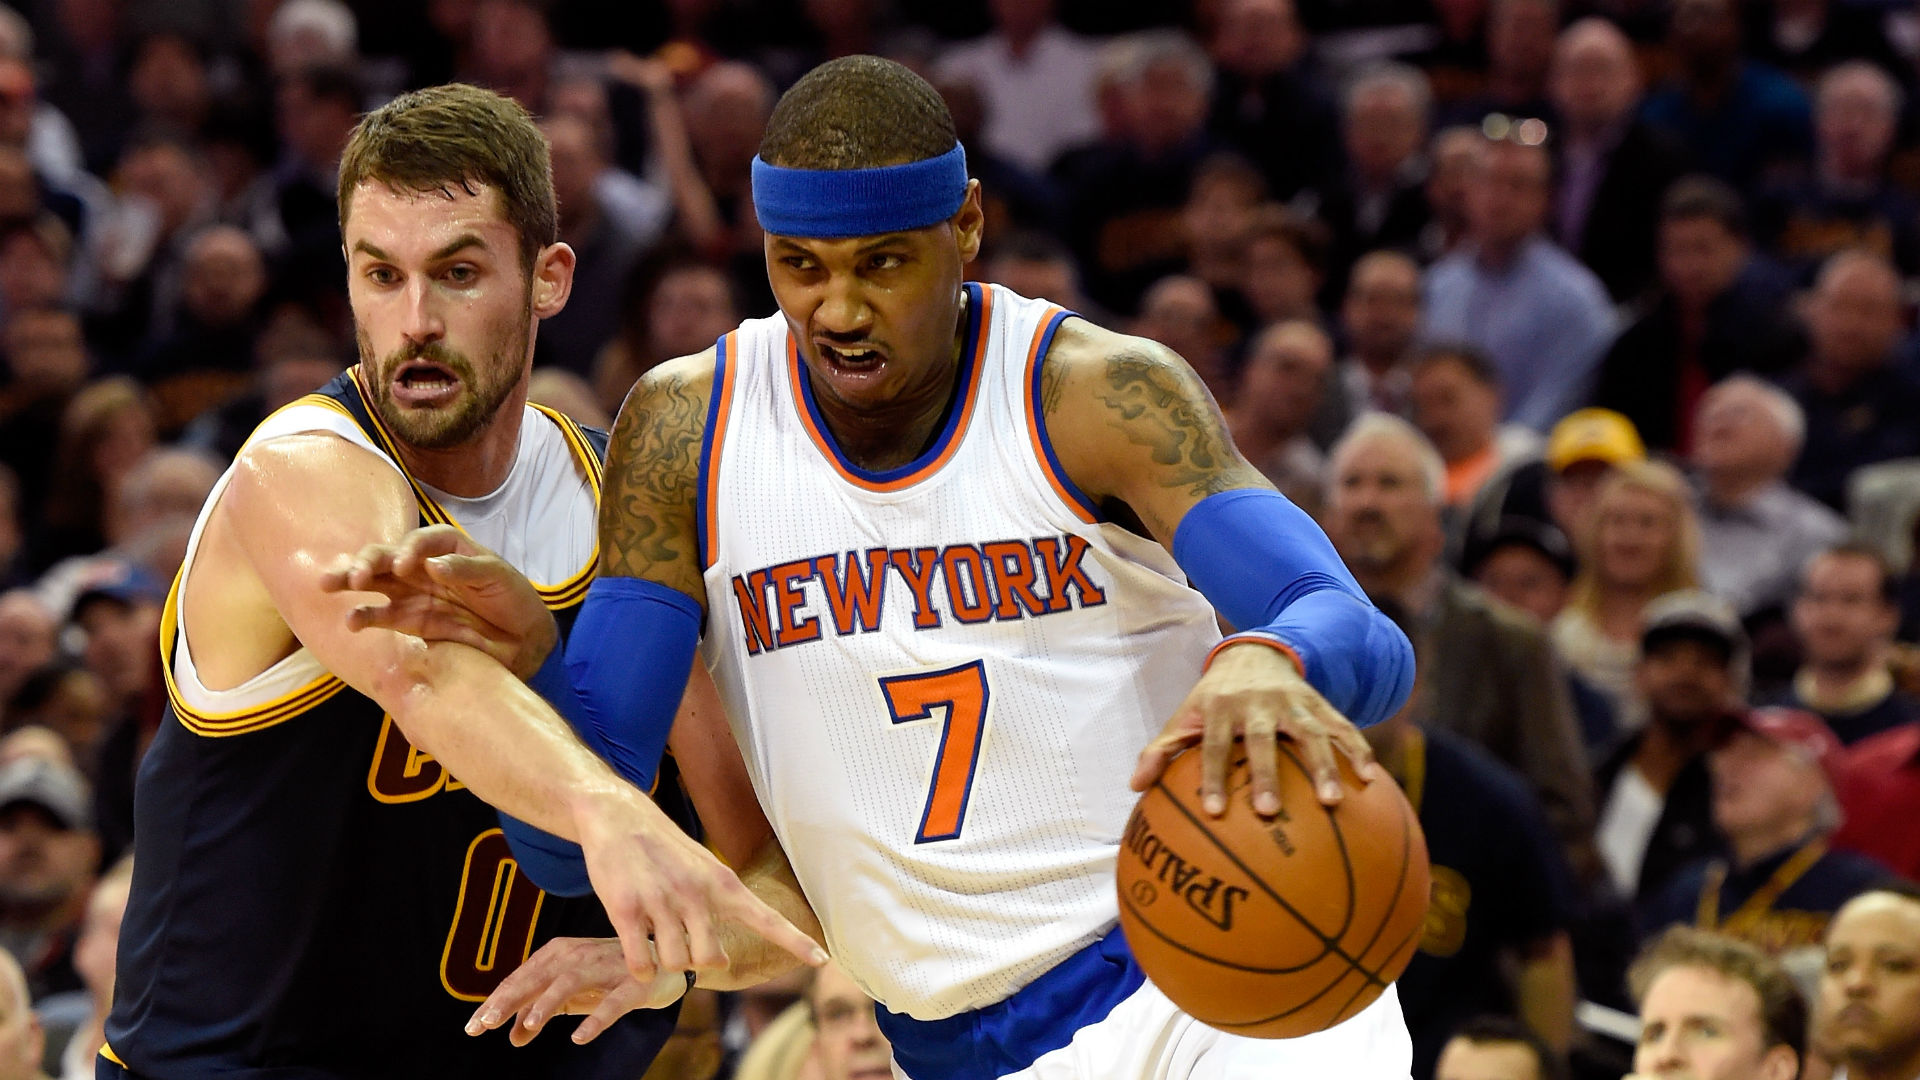 Kristaps Porzingis comes to Carmelo Anthony's defense amid trade rumors